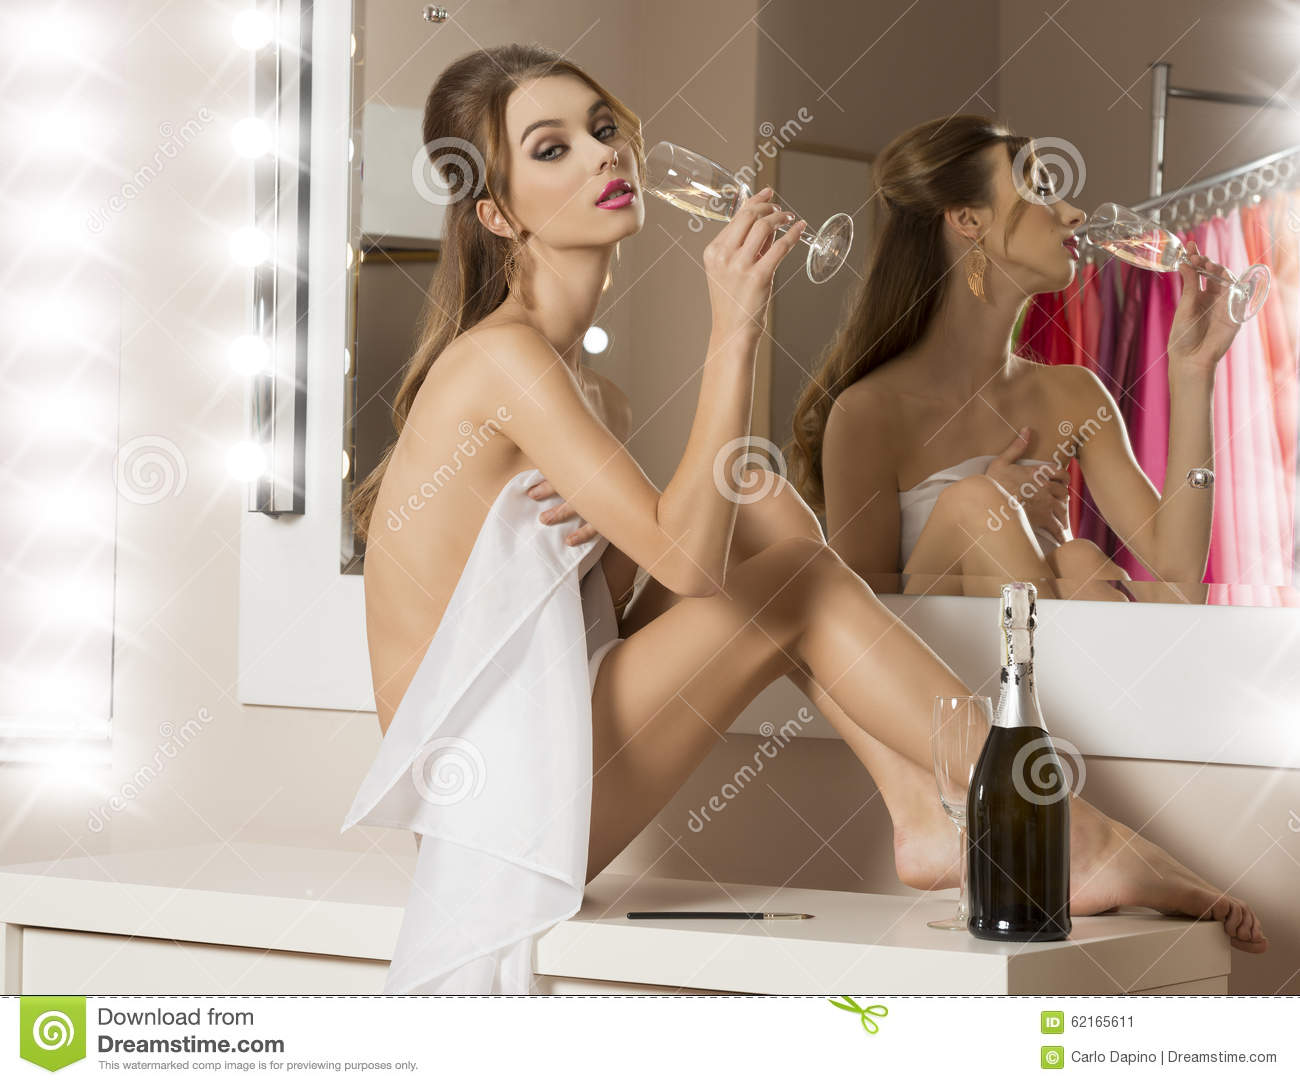 naked girl with champagne